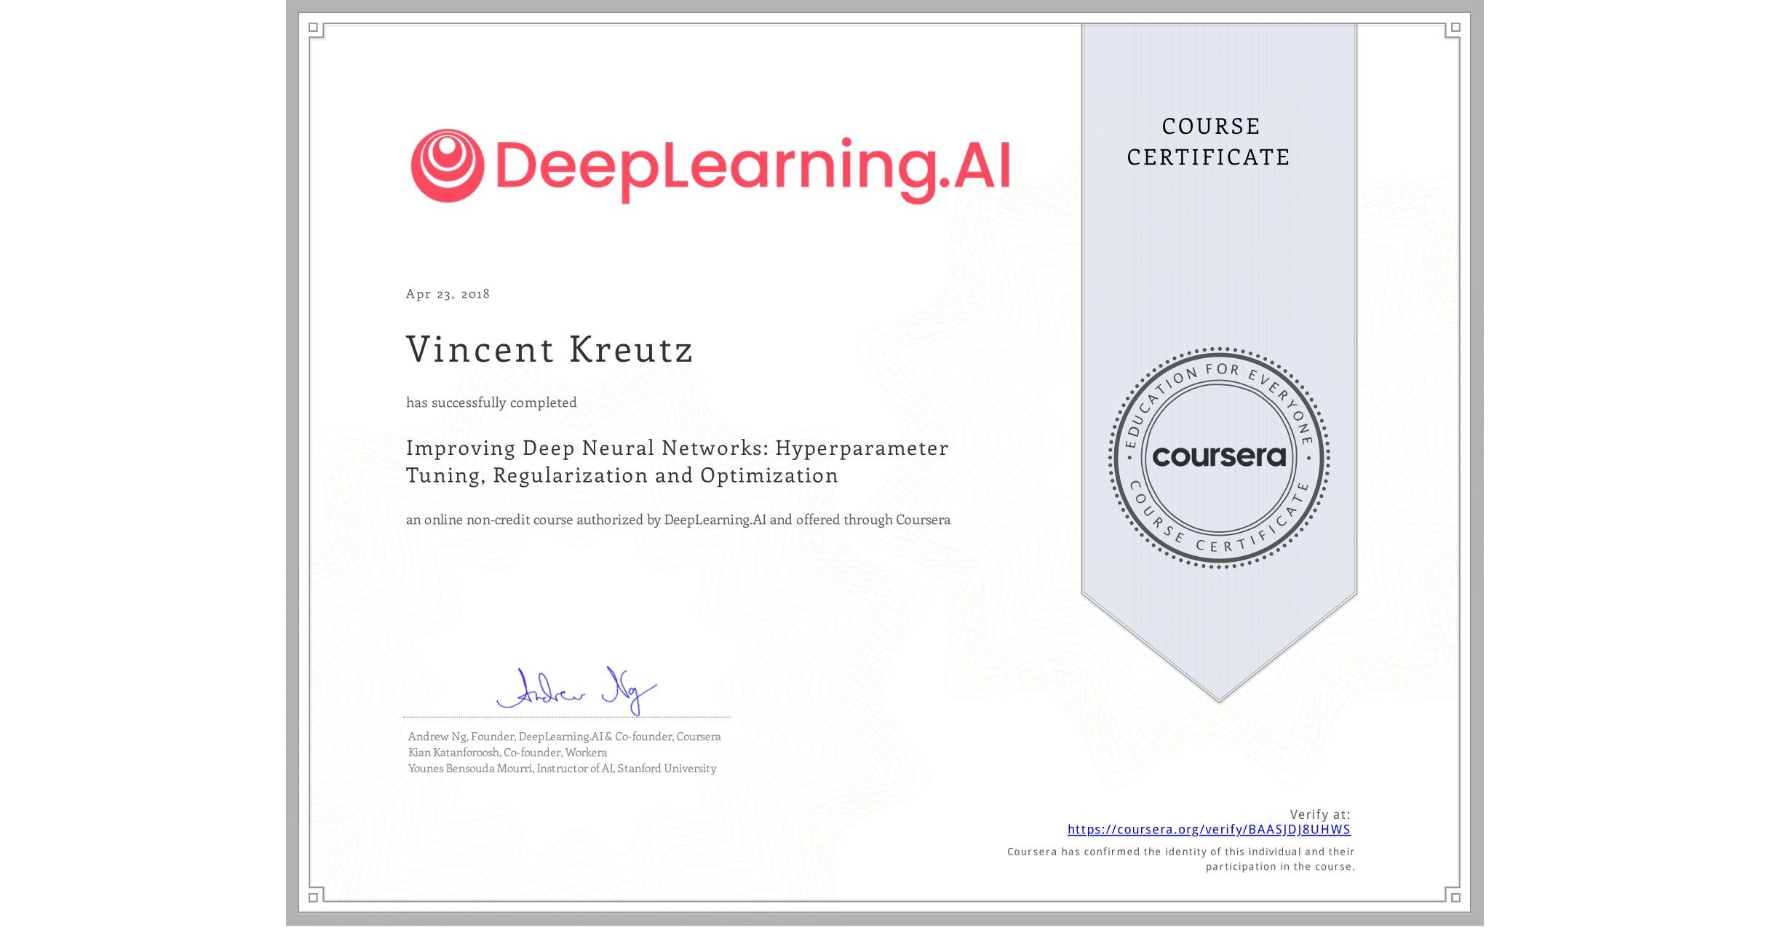 View certificate for Vincent Kreutz, Improving Deep Neural Networks: Hyperparameter Tuning, Regularization and Optimization, an online non-credit course authorized by DeepLearning.AI and offered through Coursera